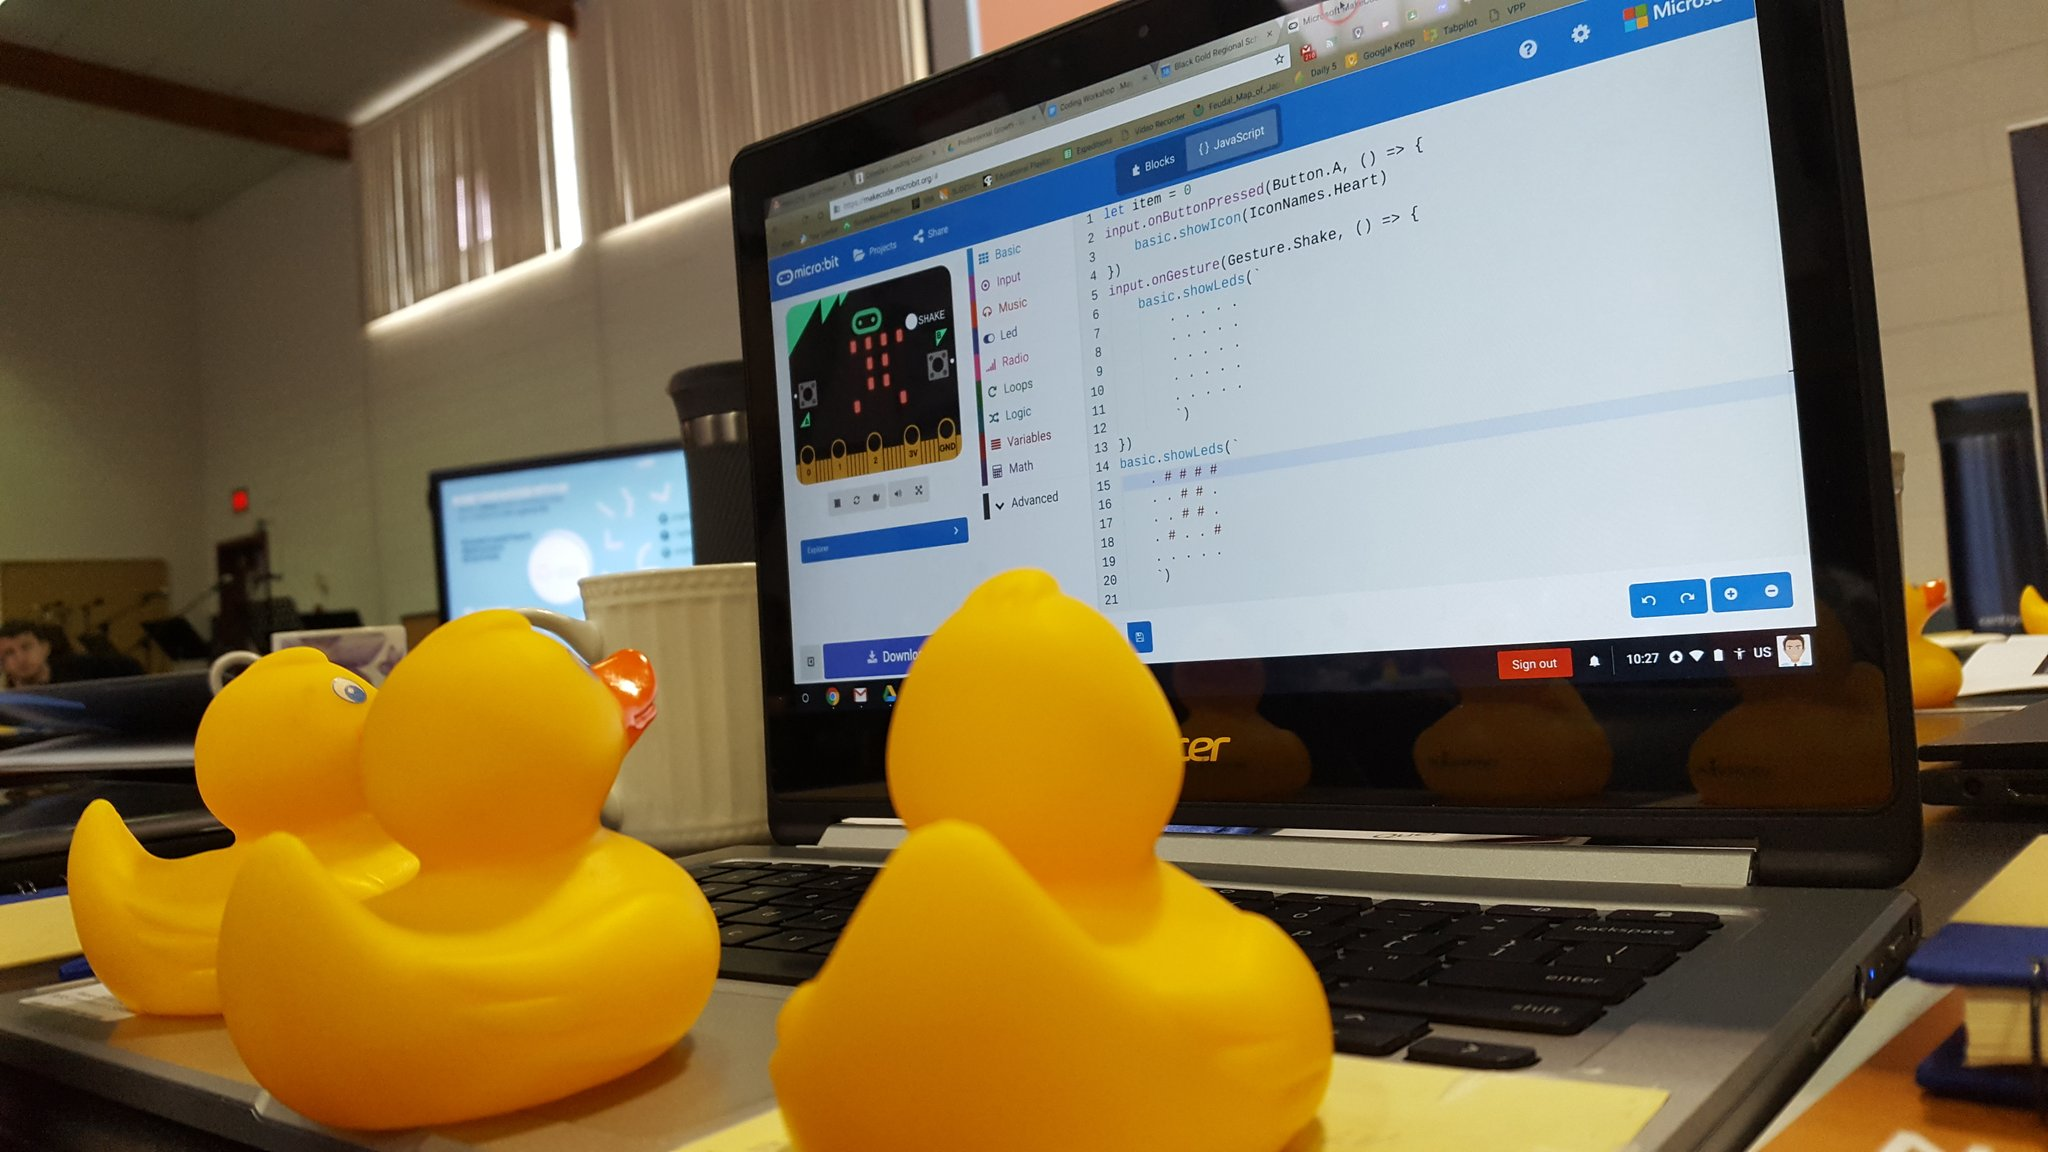 3 rubber ducks in front of a computer